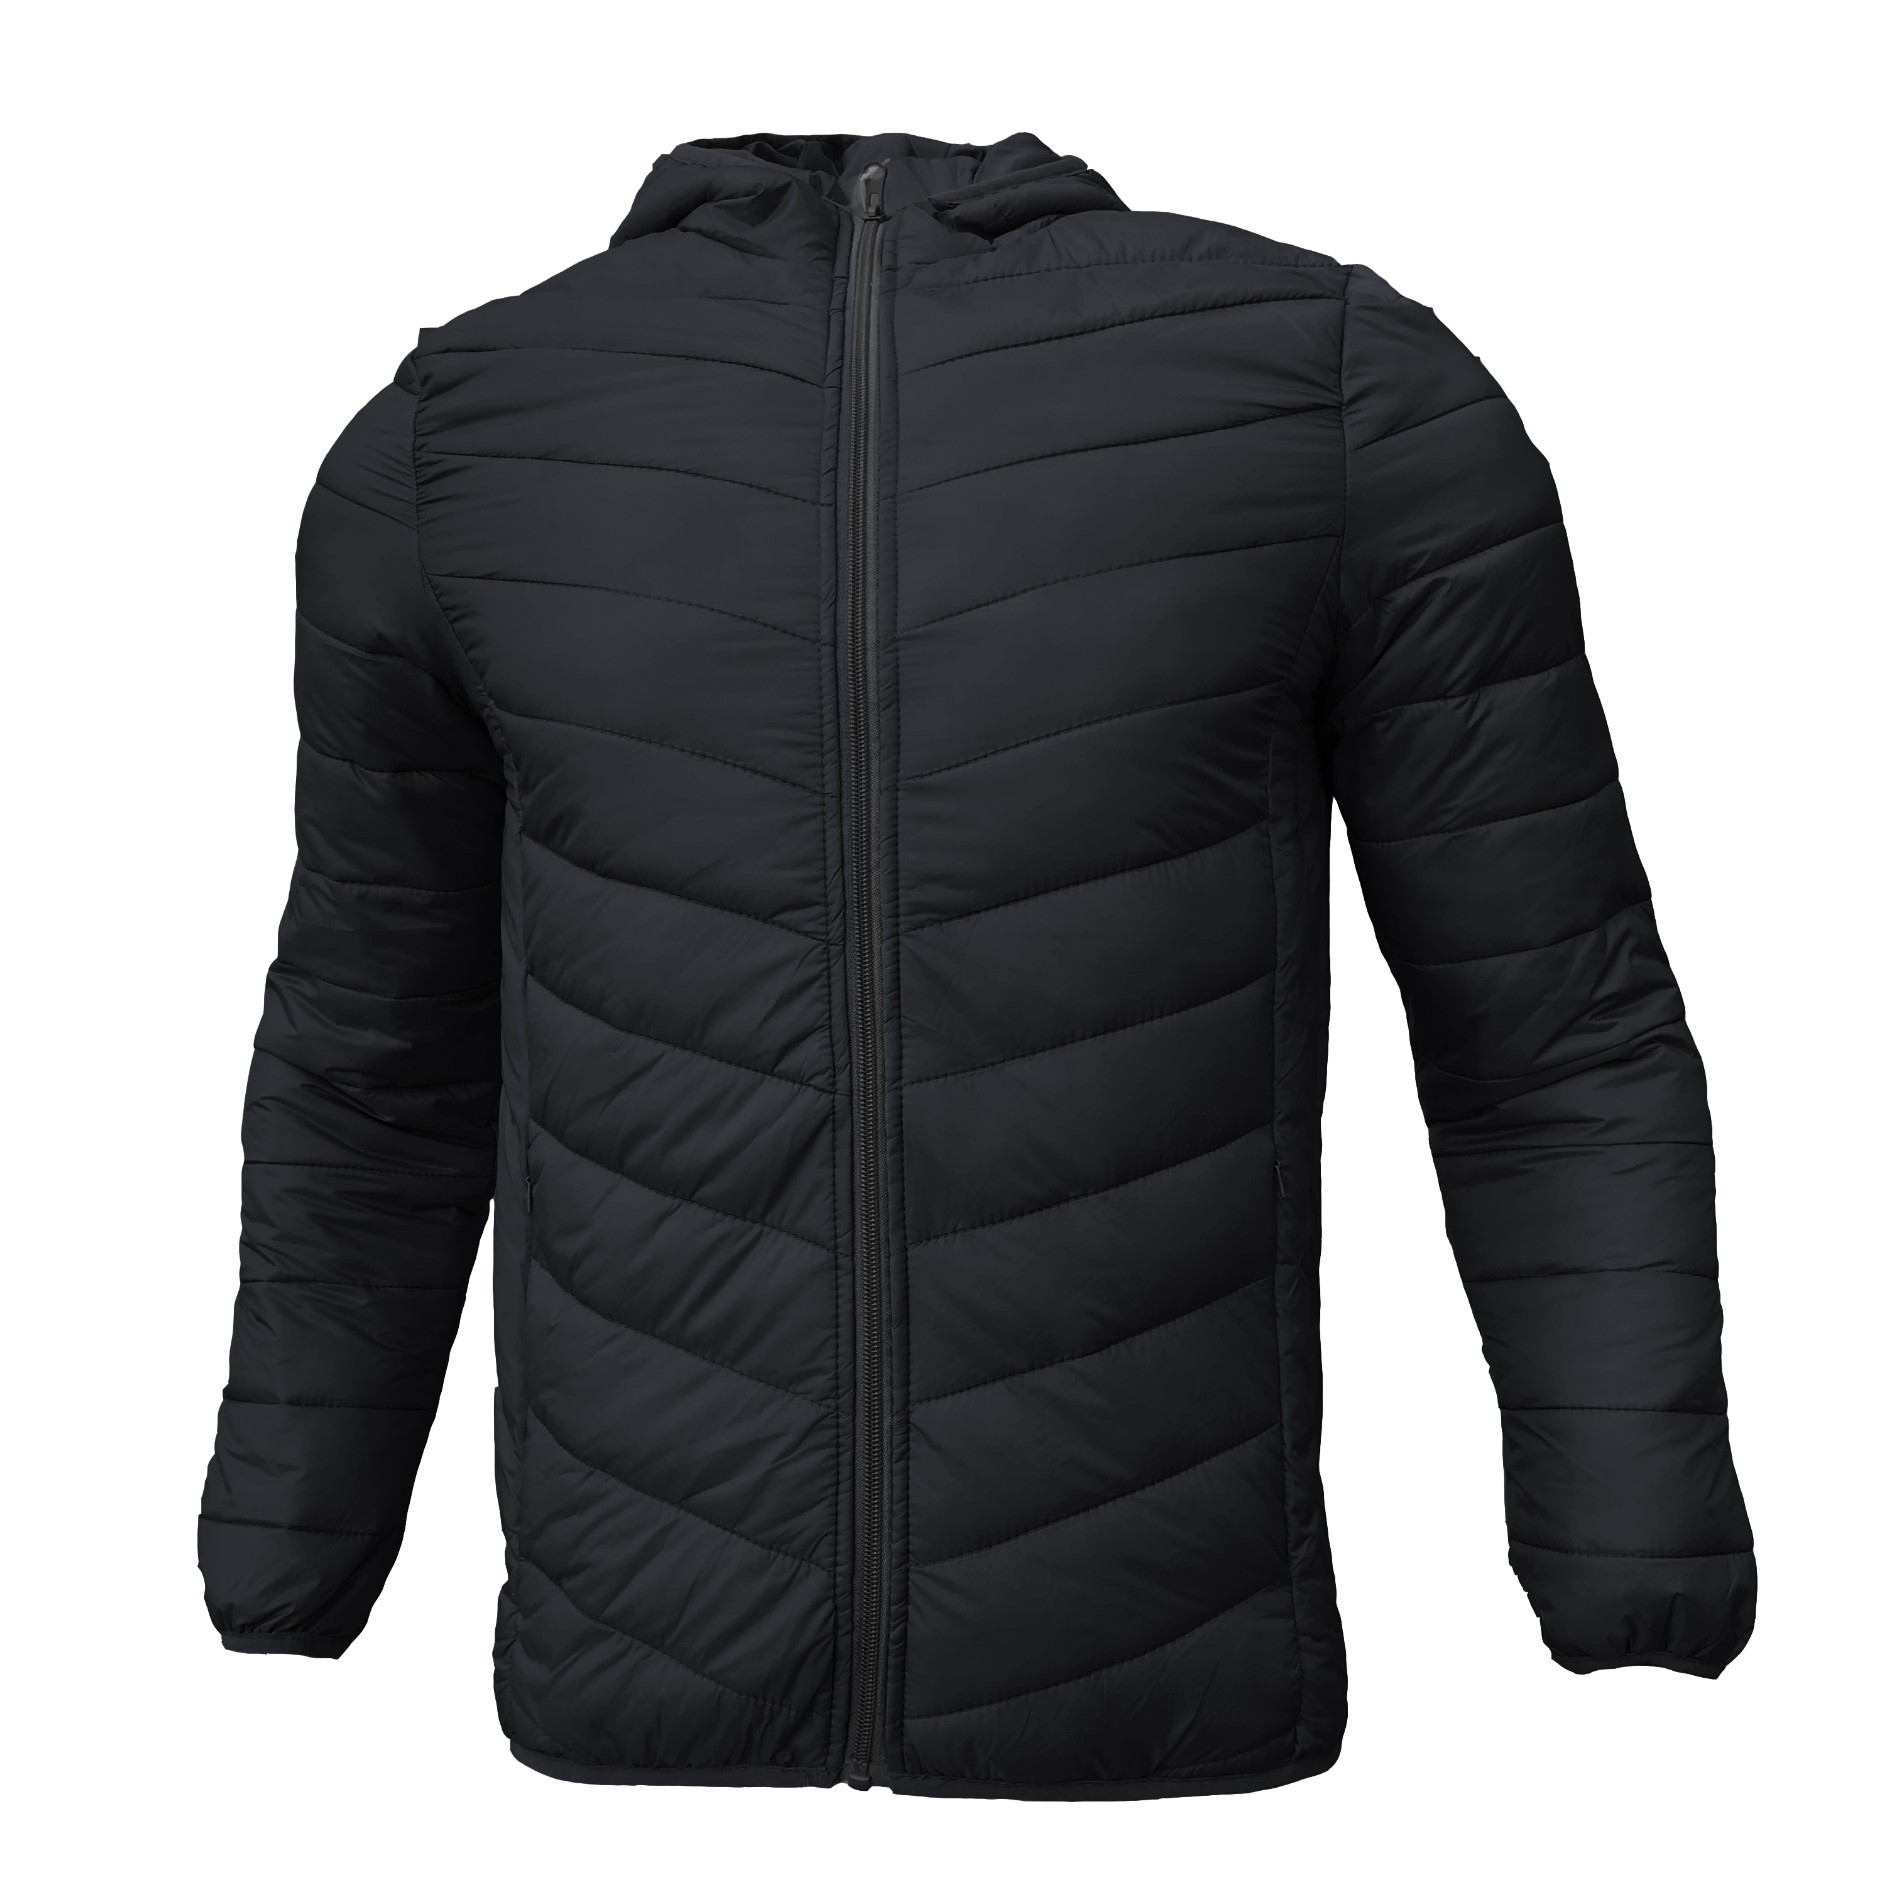 Men's Winter Quilted High Quality Hooded Padded Jacke Manufacturers, Men's Winter Quilted High Quality Hooded Padded Jacke Factory, Supply Men's Winter Quilted High Quality Hooded Padded Jacke